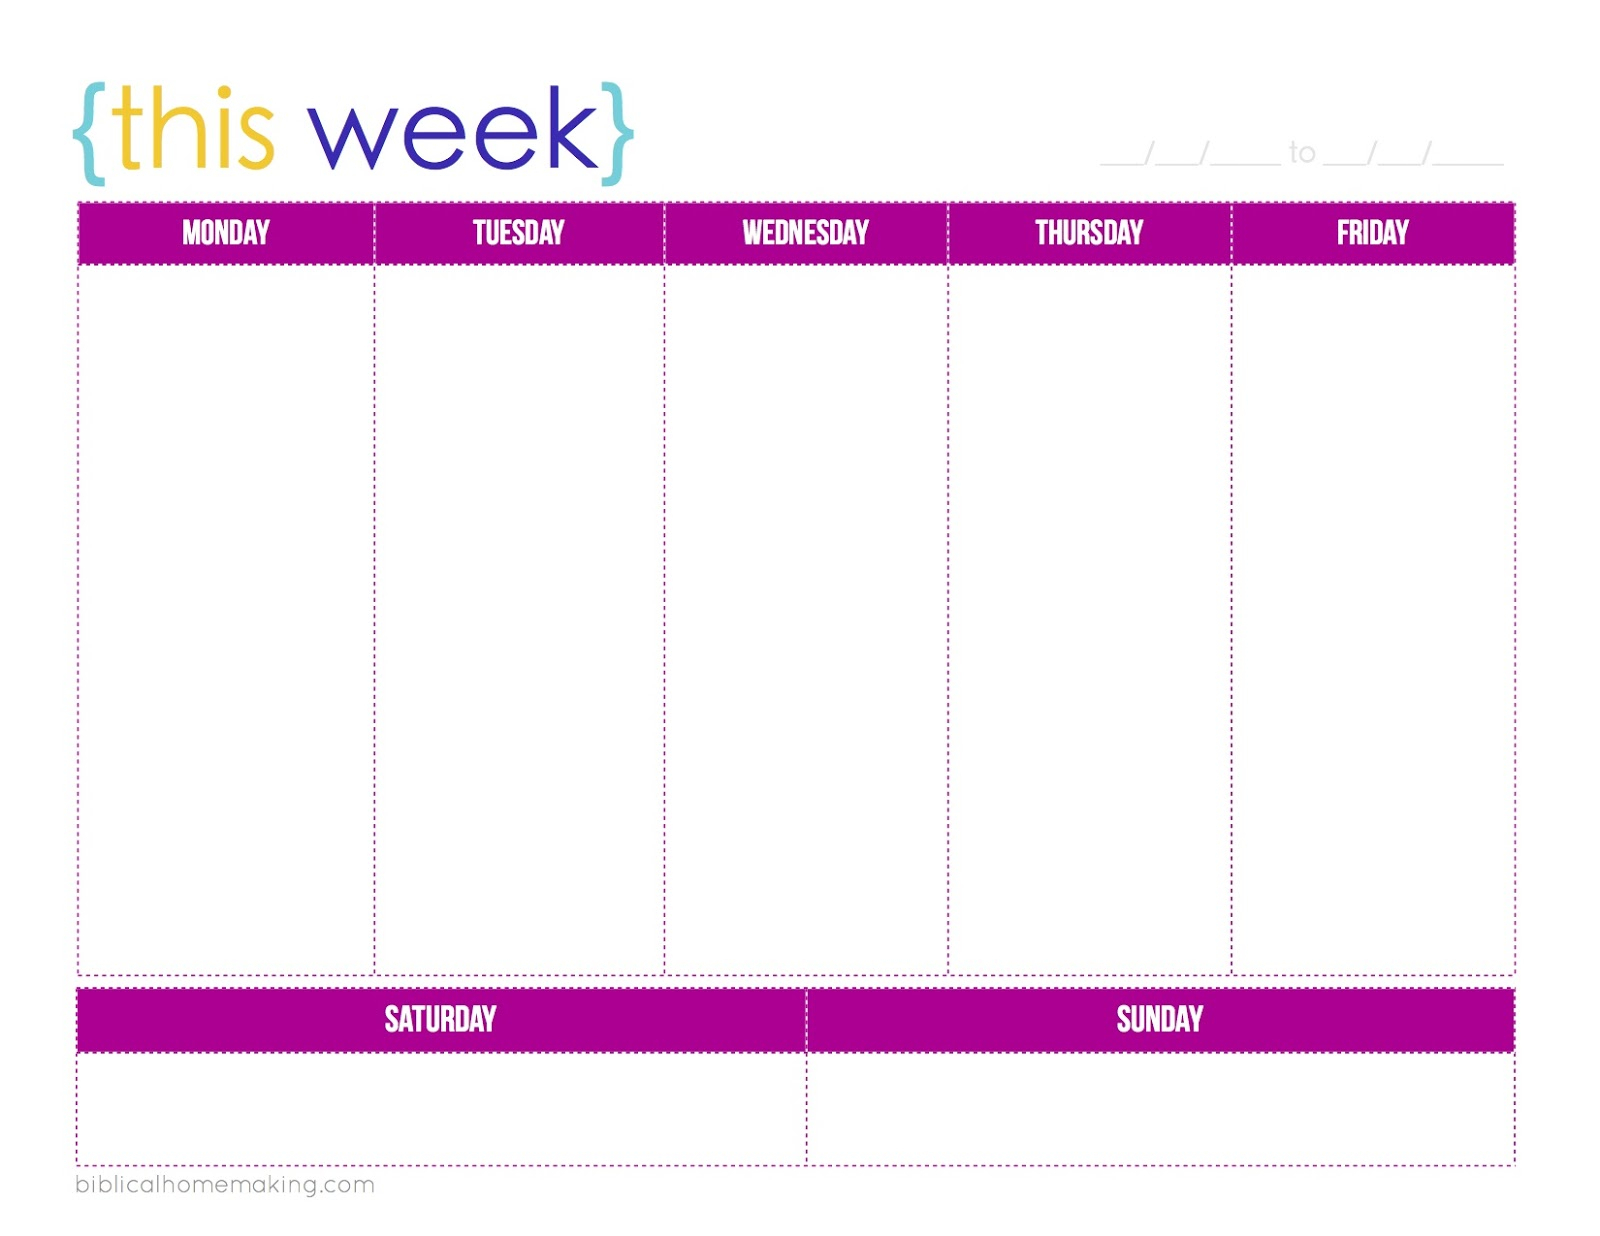 019 Template Ideas Free Printable Daily Calendar With Time with regard to Printable Pregnancy Calendar Week By Week